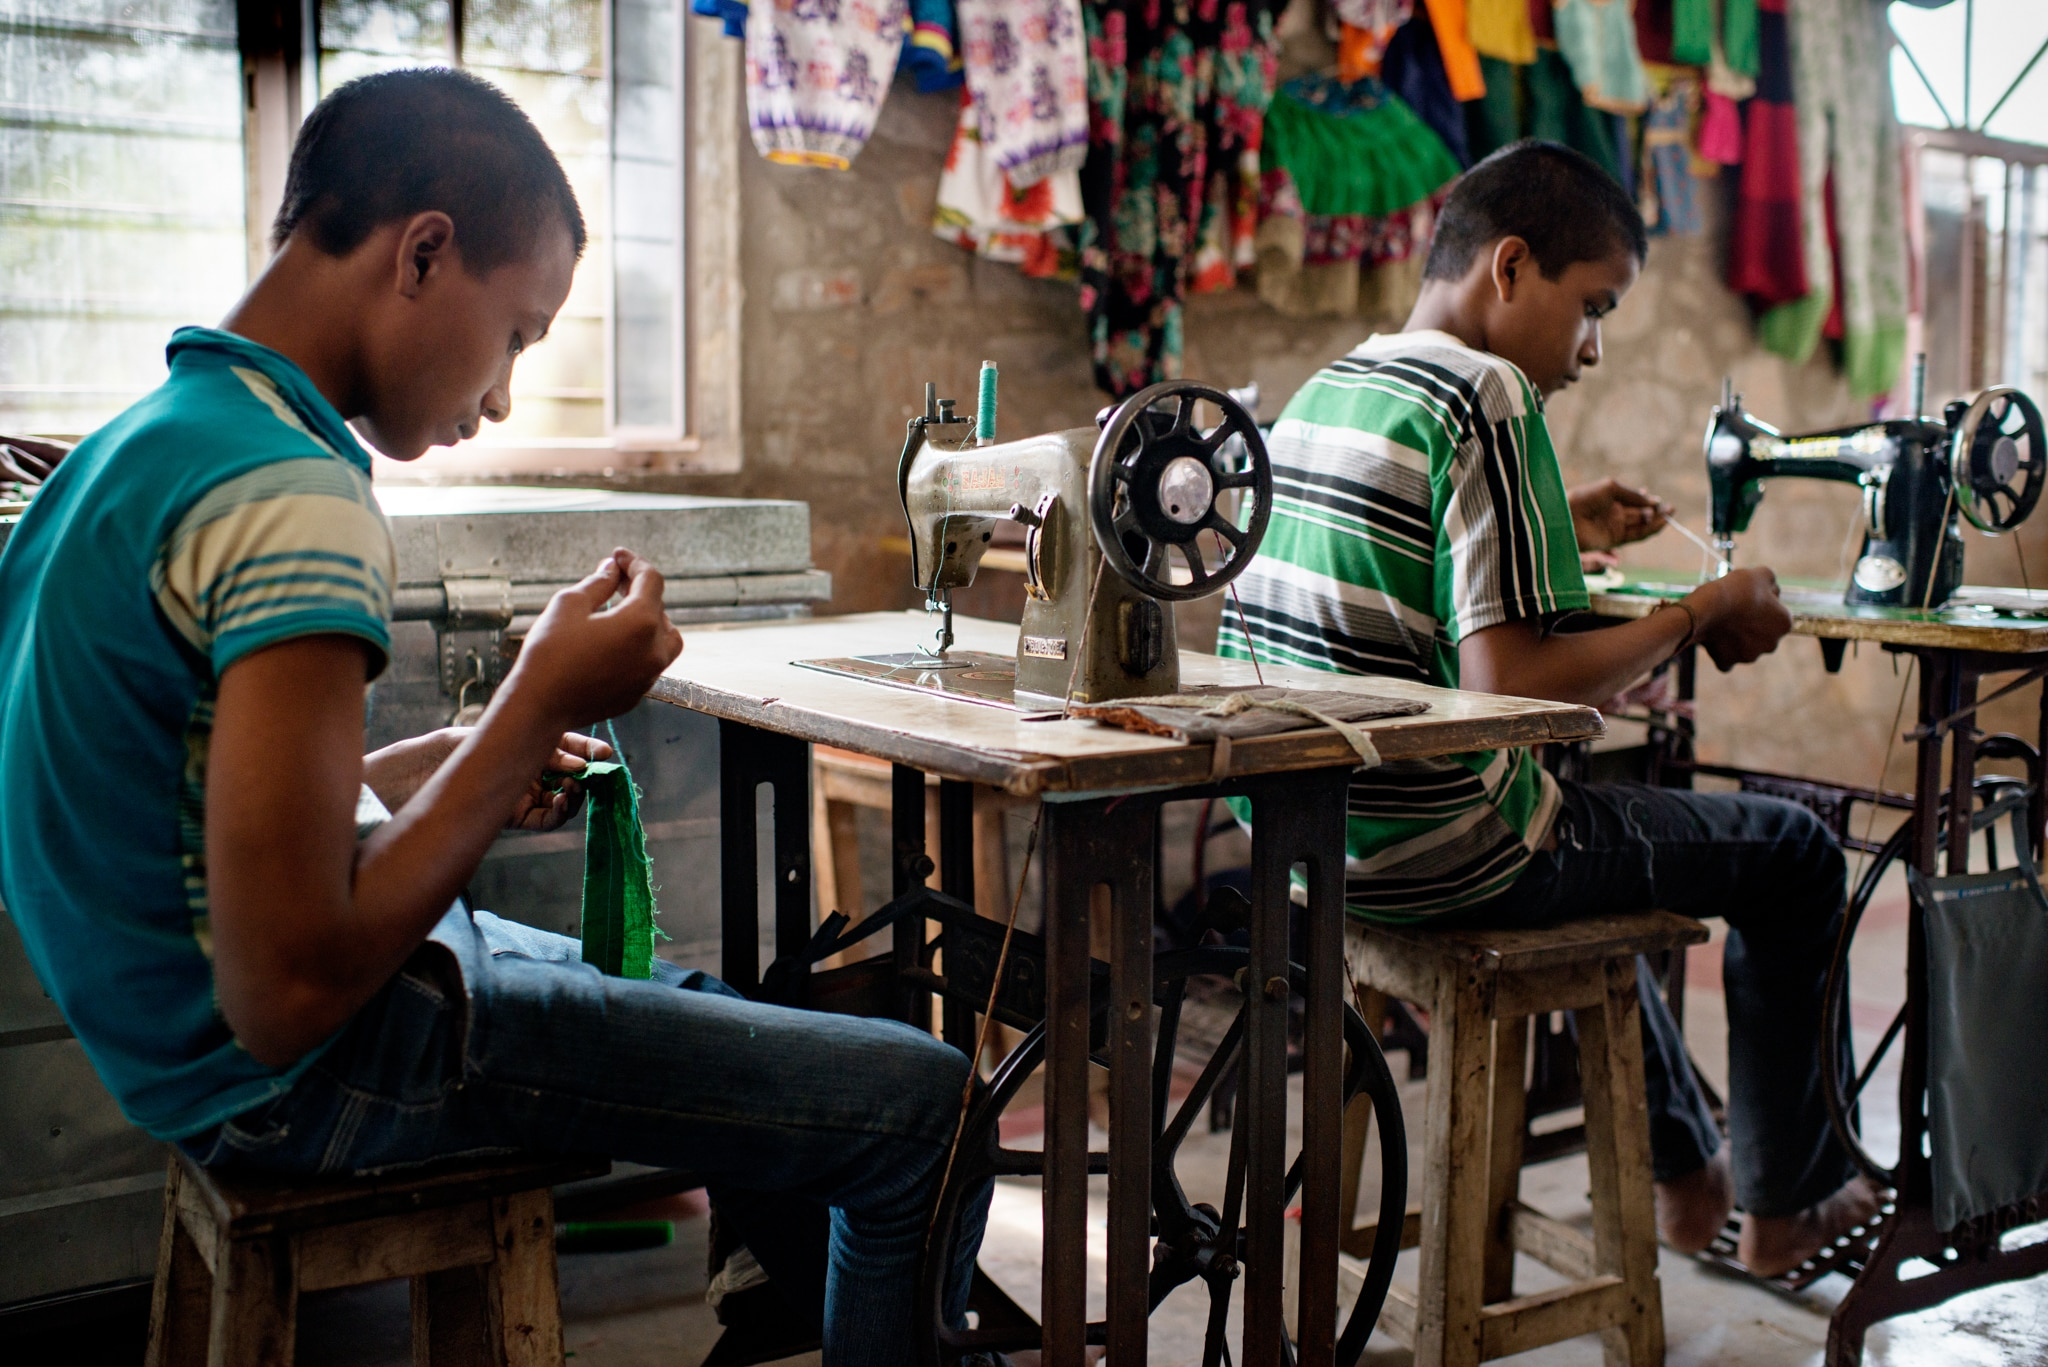 Two boys working at sewing machines (© Jonas Gratzer/LightRocket via Getty Images)